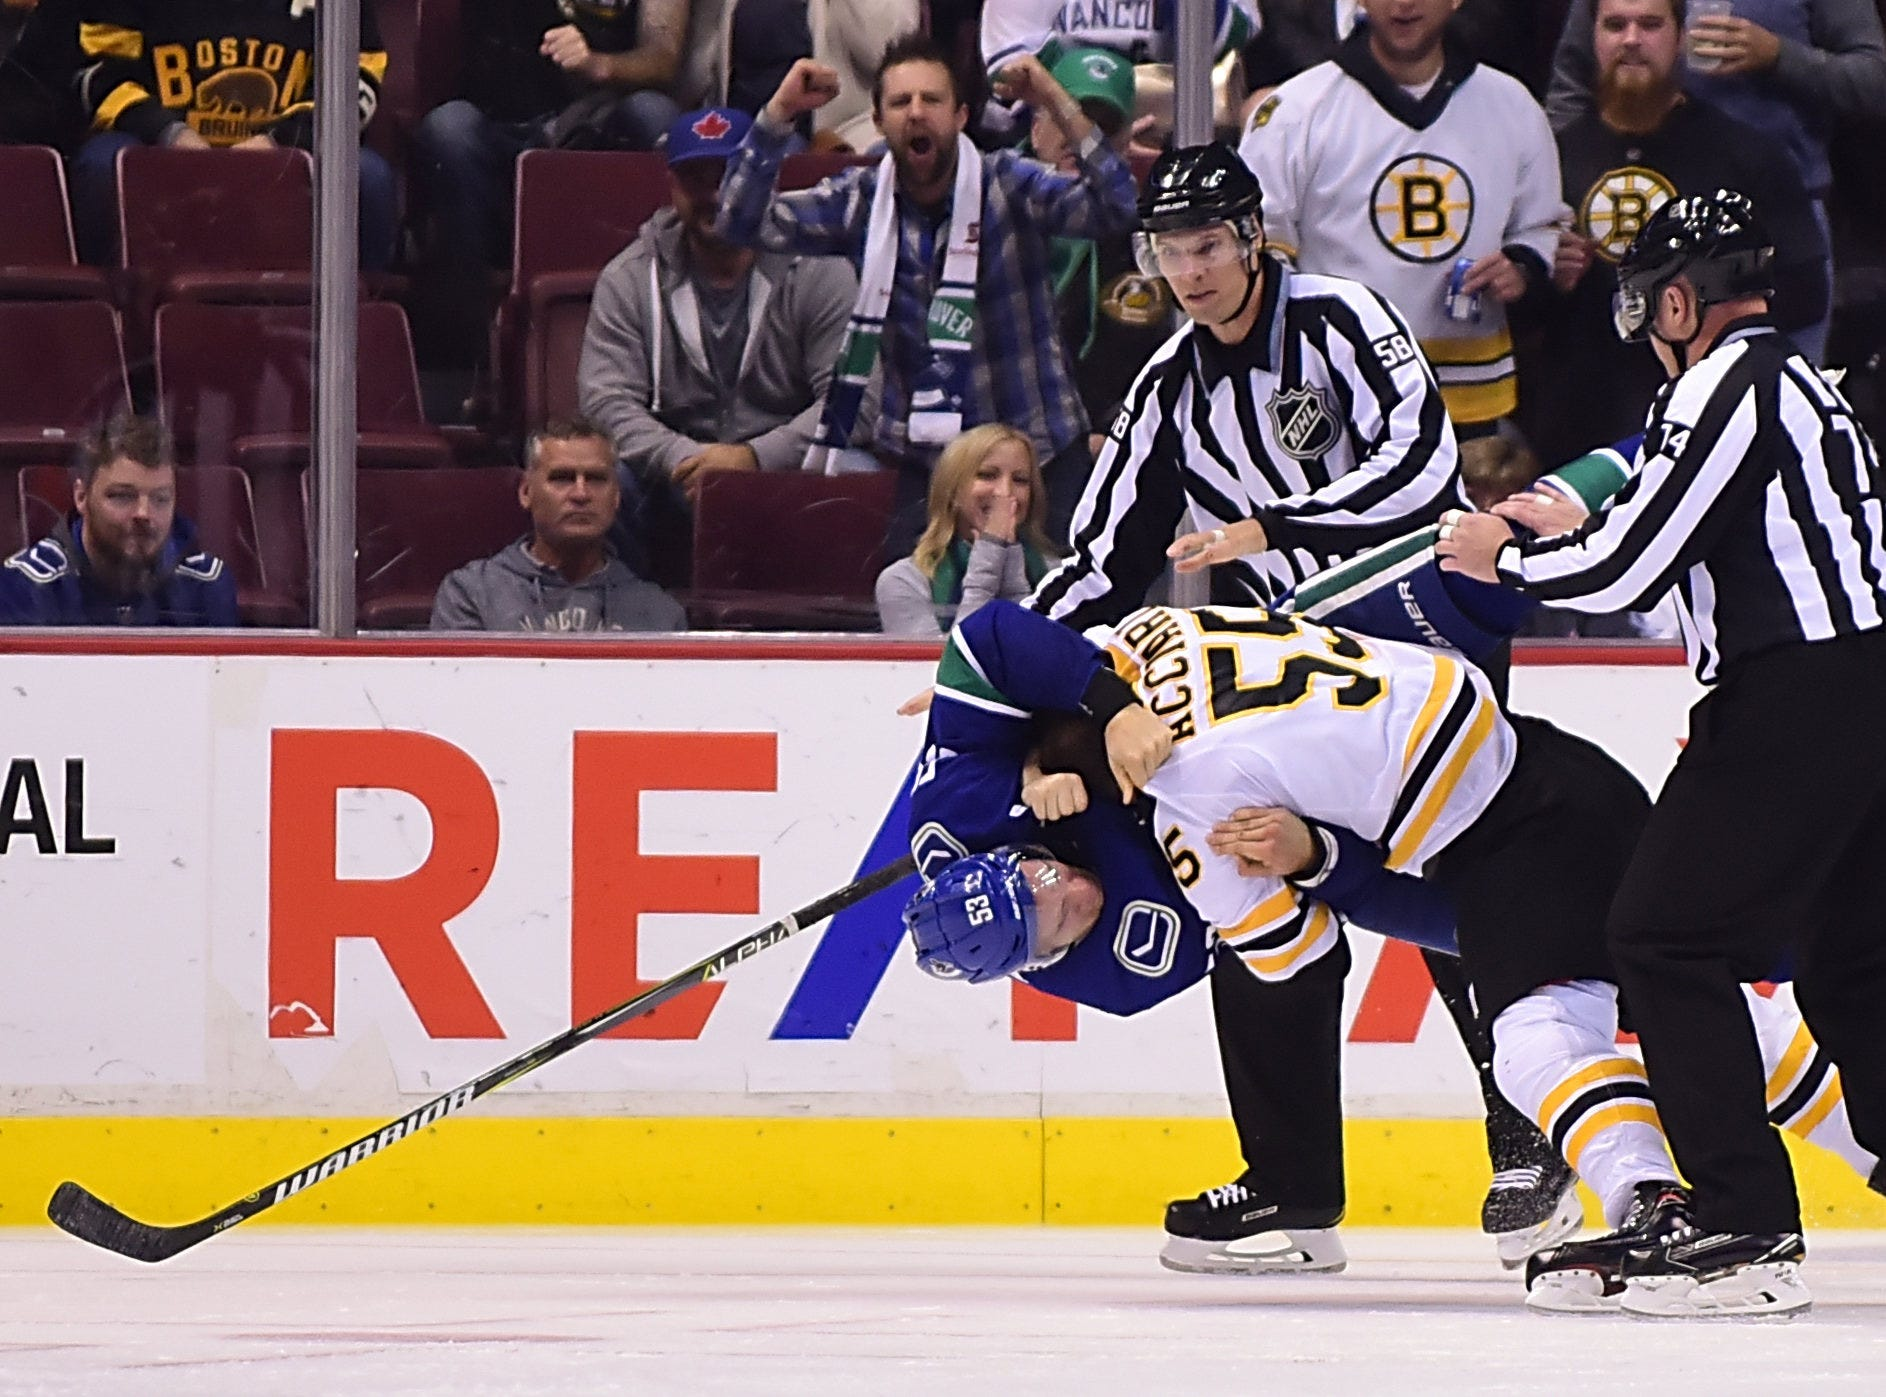 Oct. 20: Vancouver Canucks' Bo Horvat vs. Boston Bruins' Noel Acciari (55)